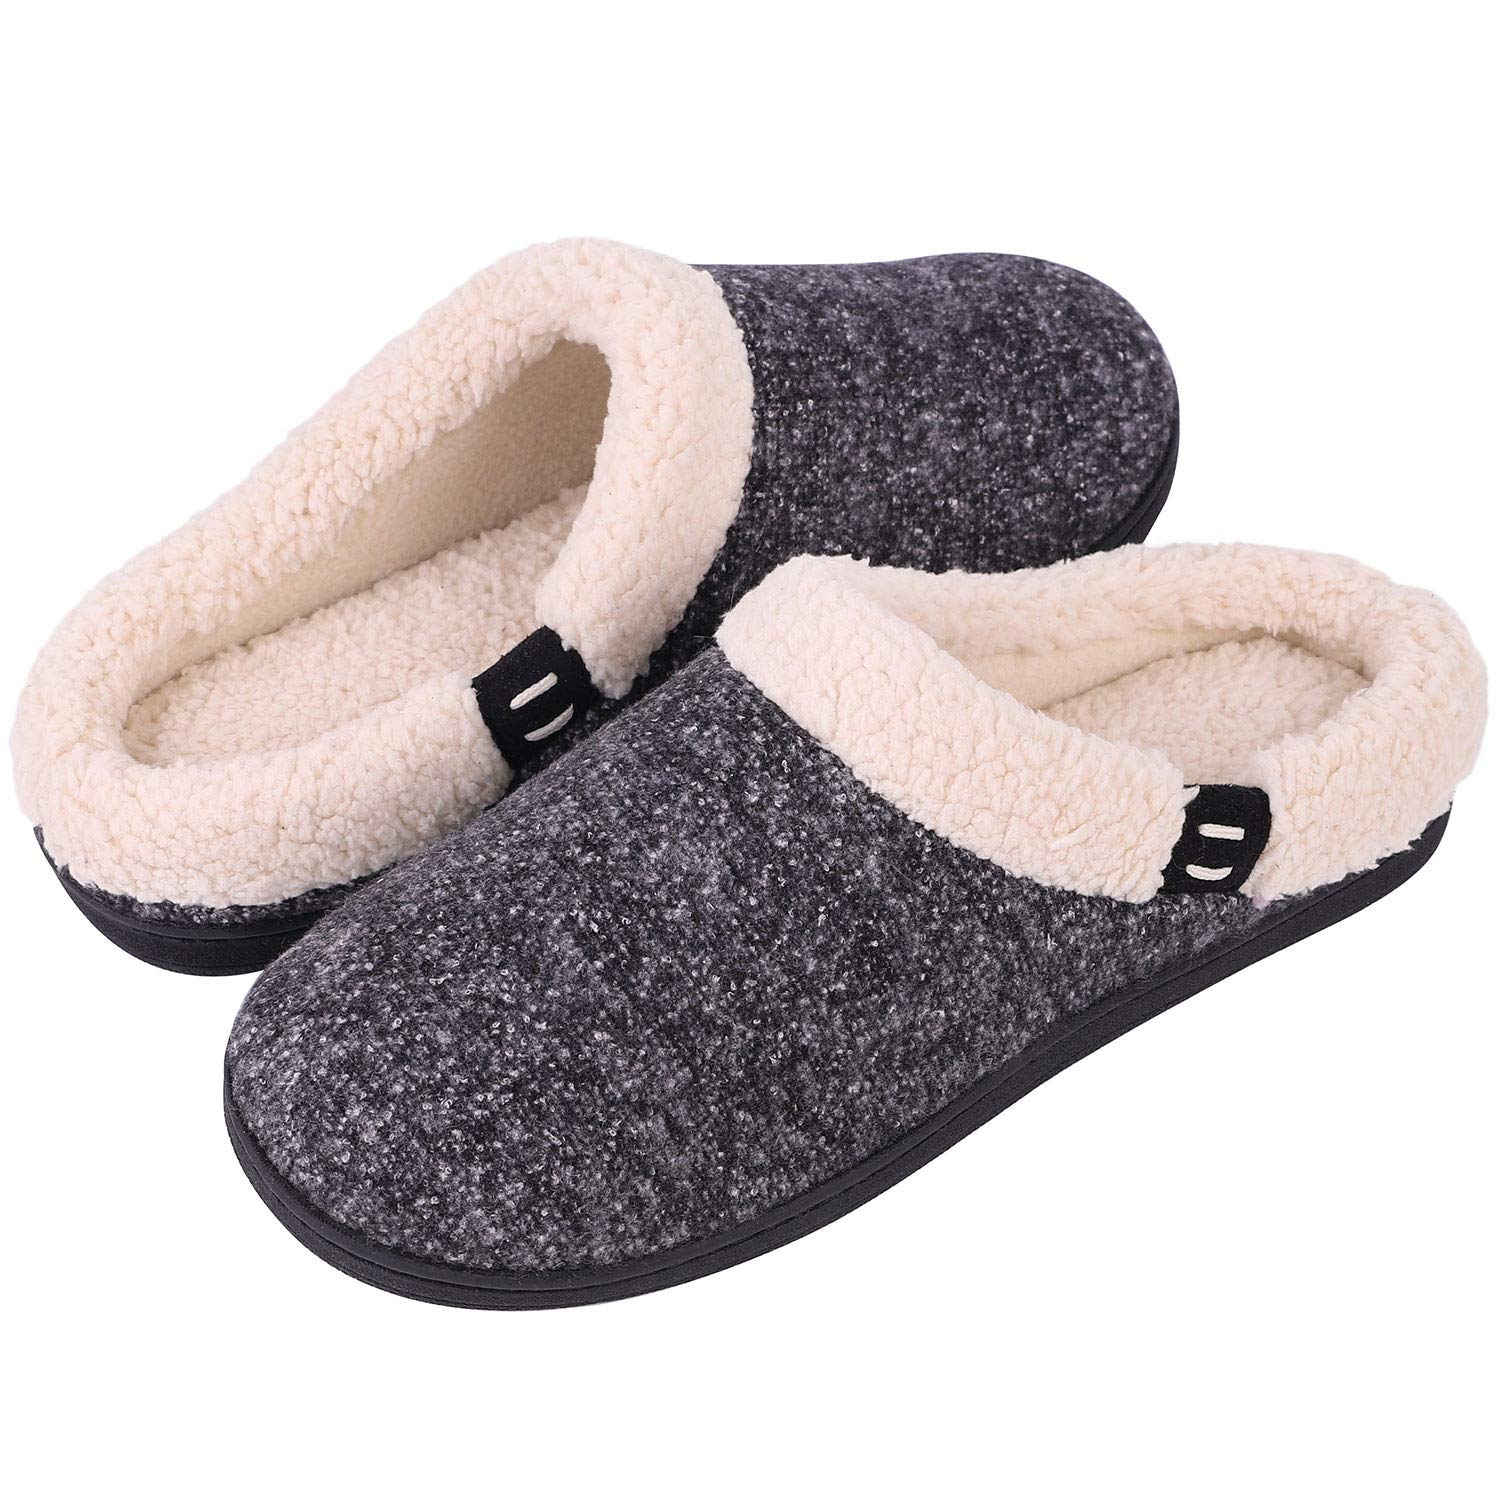 7ff944fa4ae Women s Comfort Memory Foam Slippers Fuzzy Wool Plush Slip-On Clog House  Shoes w Indoor   Outdoor Sole  Amazon.ca  Shoes   Handbags